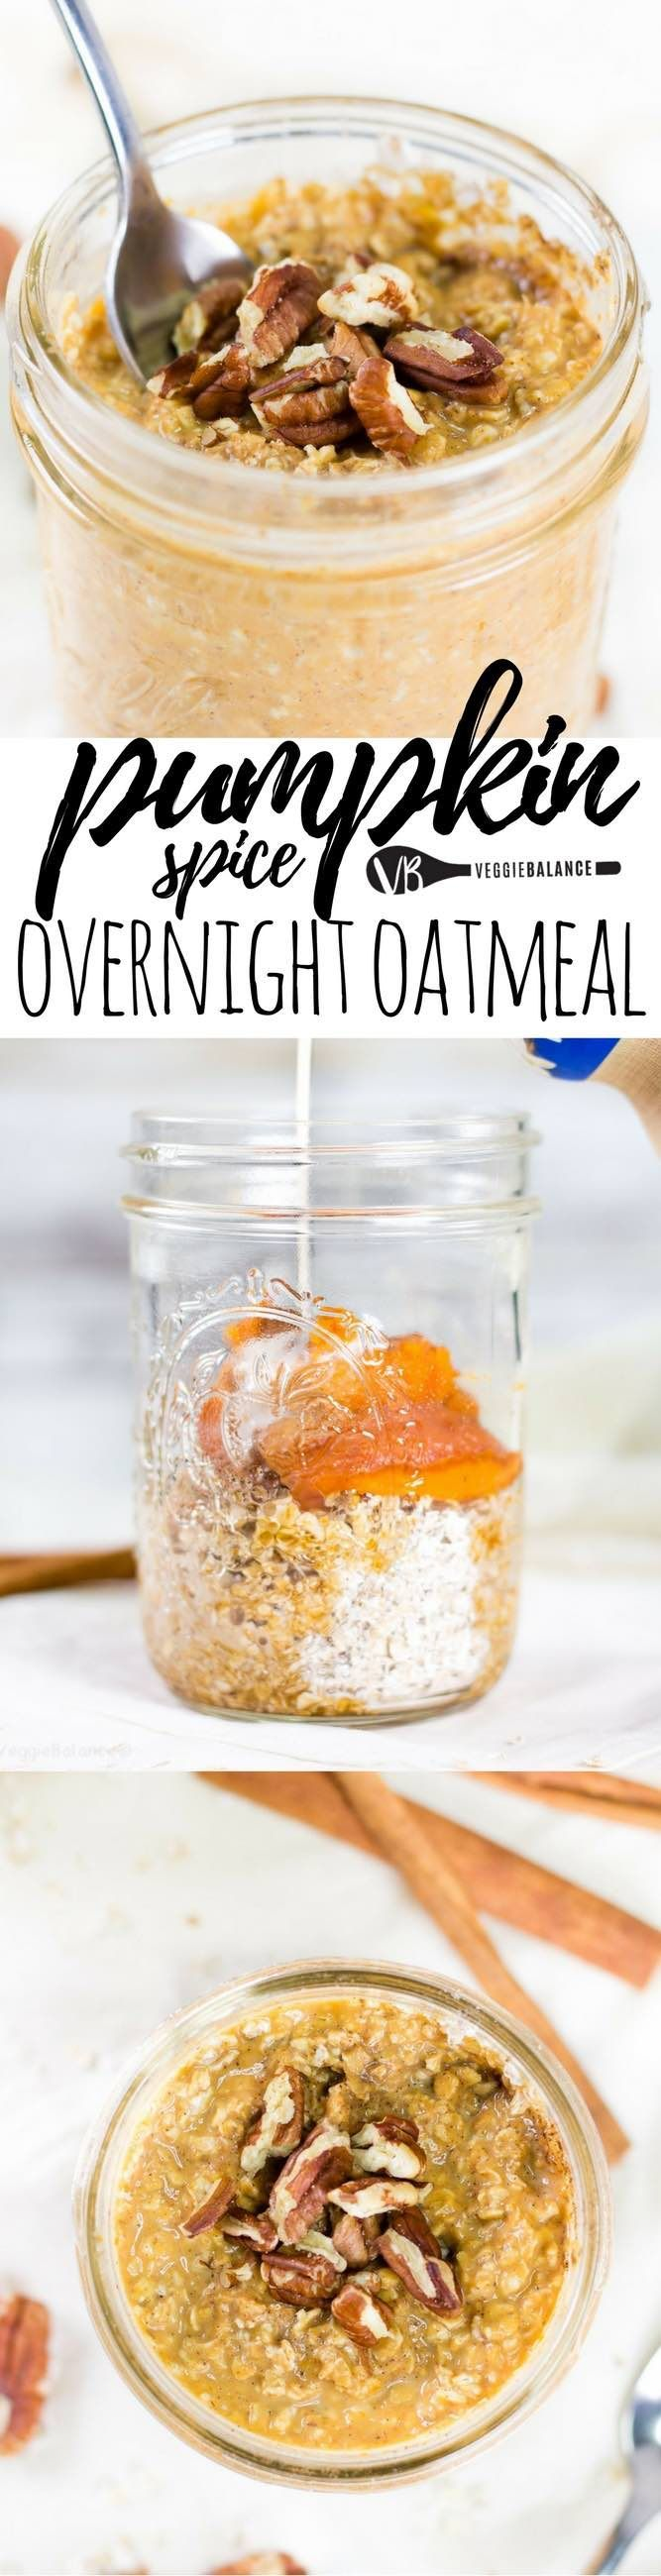 The Best Pumpkin Overnight Oatmeal recipe bring fall flavor and bliss of pumpkin back into our lives. Quick and Easy breakfast to start your day right as the cooler temps arrive. (gluten-free, dairy-free, low-sugar, vegan) Sponsored by @lovemysilk